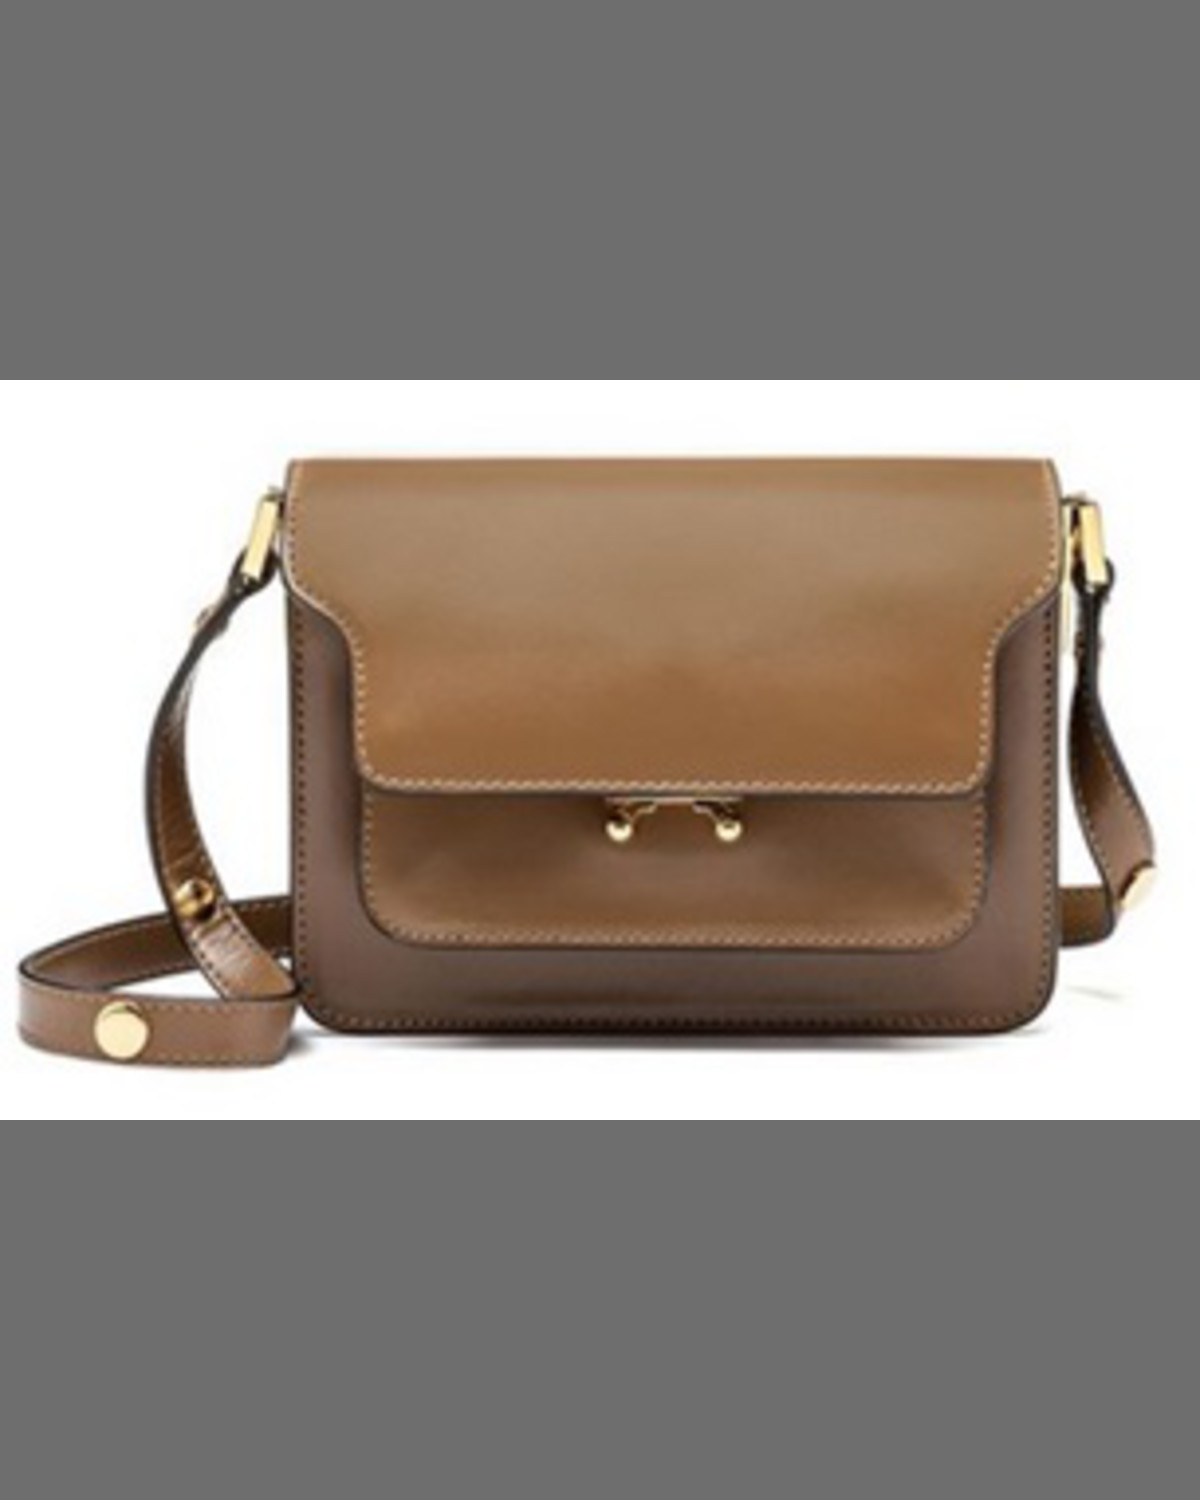 Trunk Small Leather Shoulder Bag Brown Blue